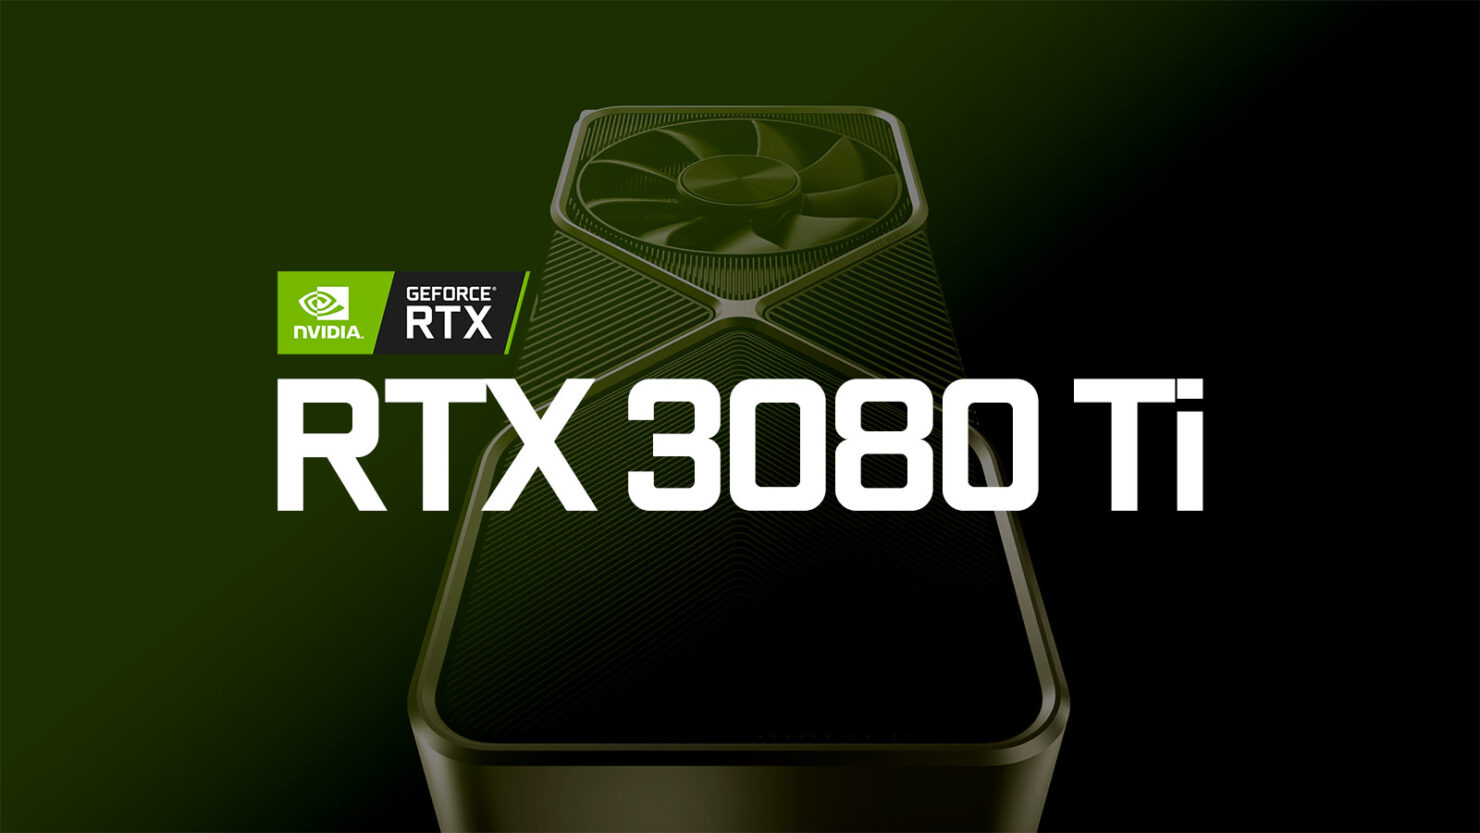 nvidia-teases-official-geforce-rtx-3070-ti-&-rtx-3080-ti-graphics-cards-announcement-for-31st-may